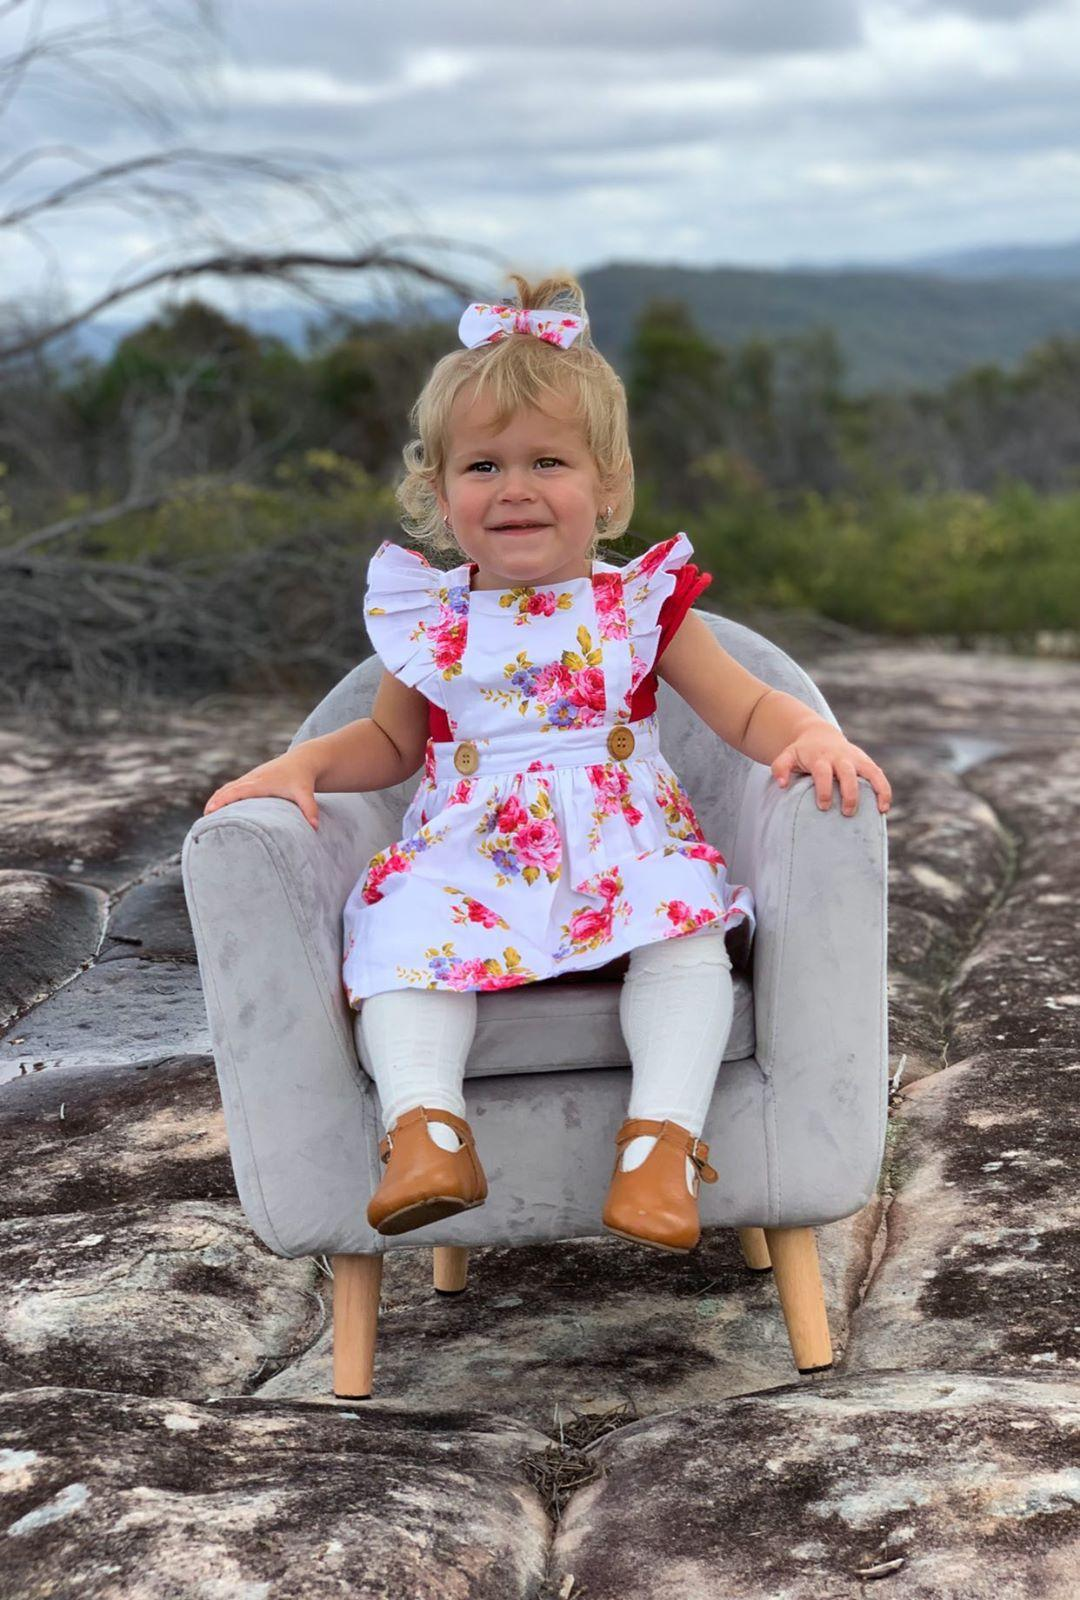 baby girl sitting on sofa-chair while on floral pinny dress